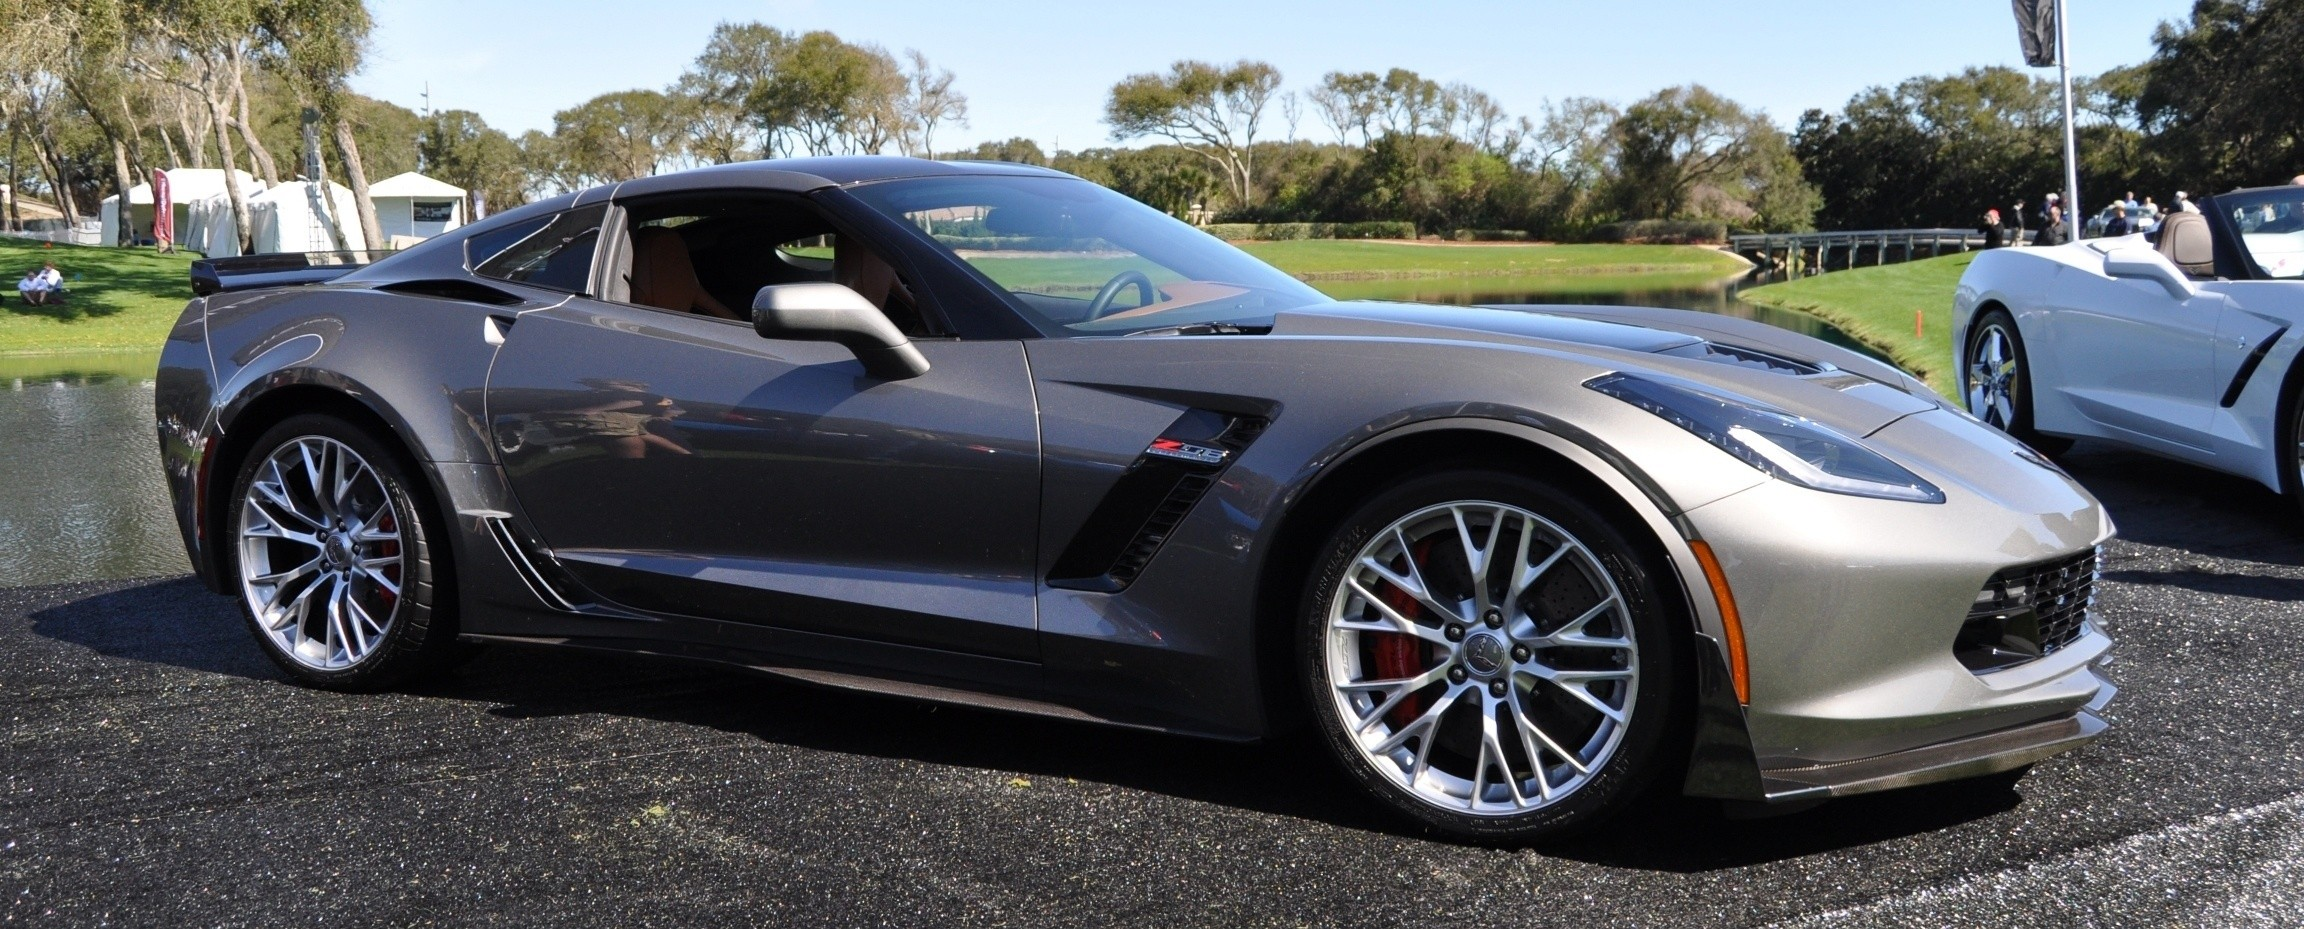 2015 Z06 -- First Outdoor Showing -- Forthcoming Chevrolet Corvette Track Monster Holds Still For 26 High-Res Photos 9